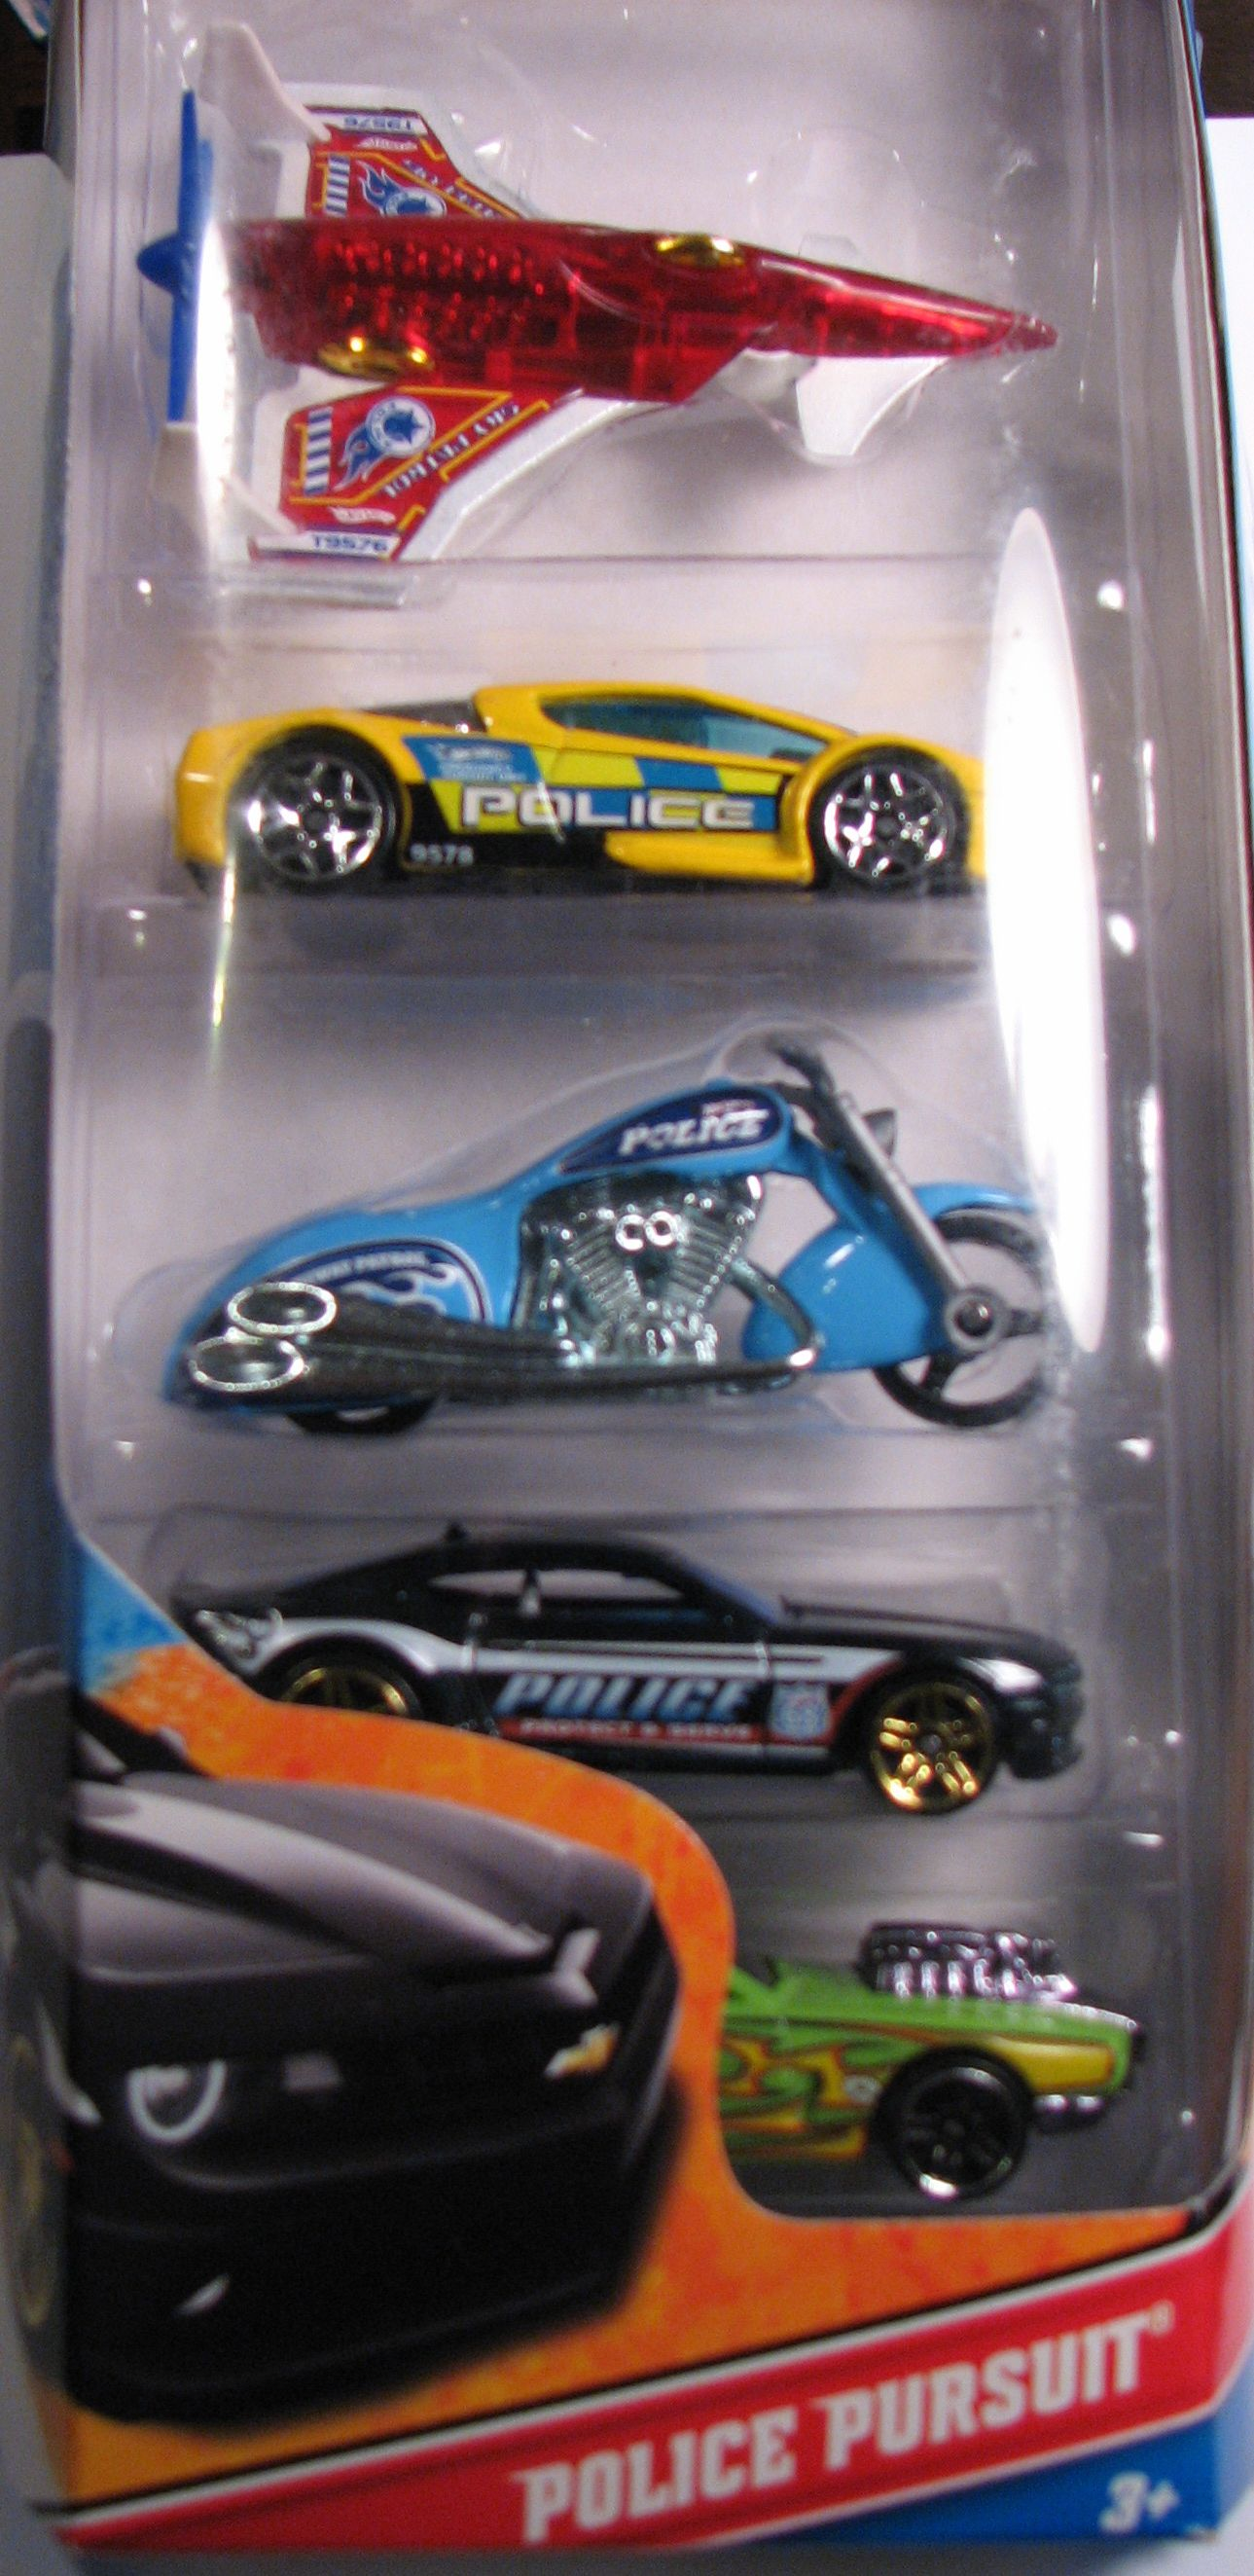 Police Pursuit 5-Pack (2011)